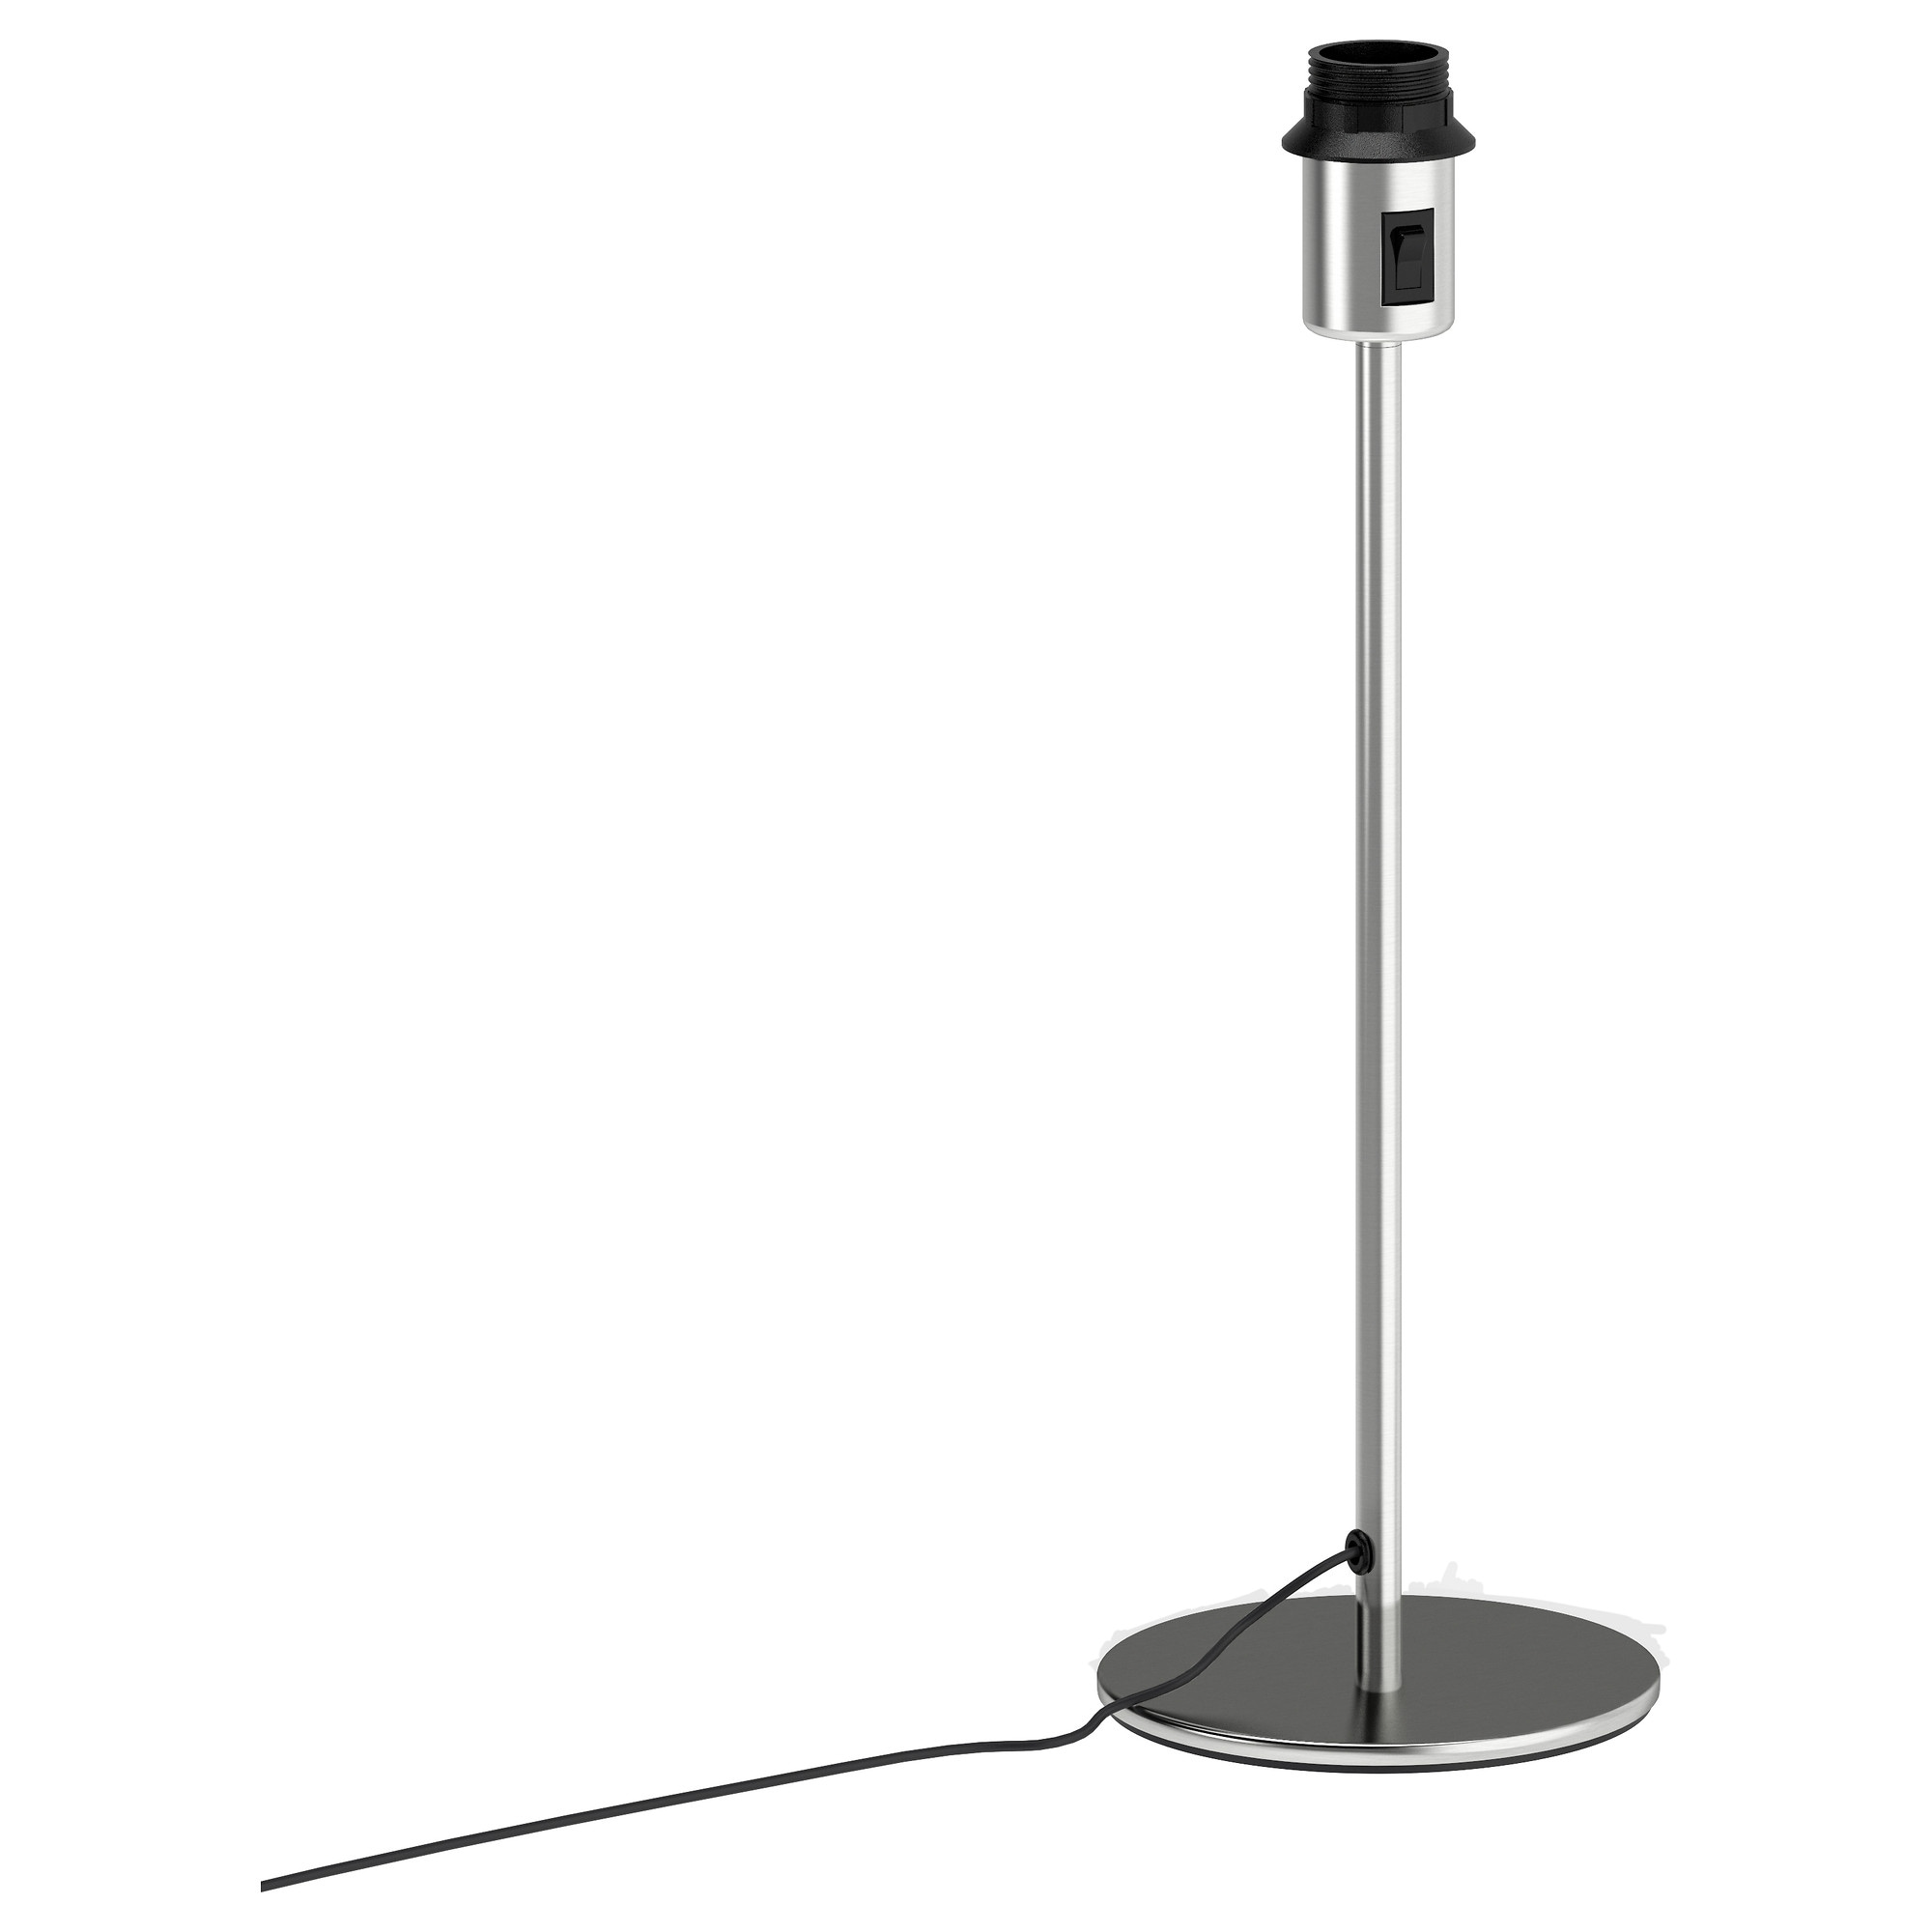 Ikea Table Lamp Base: RODD table lamp base with LED bulb, nickel plated Height: 18